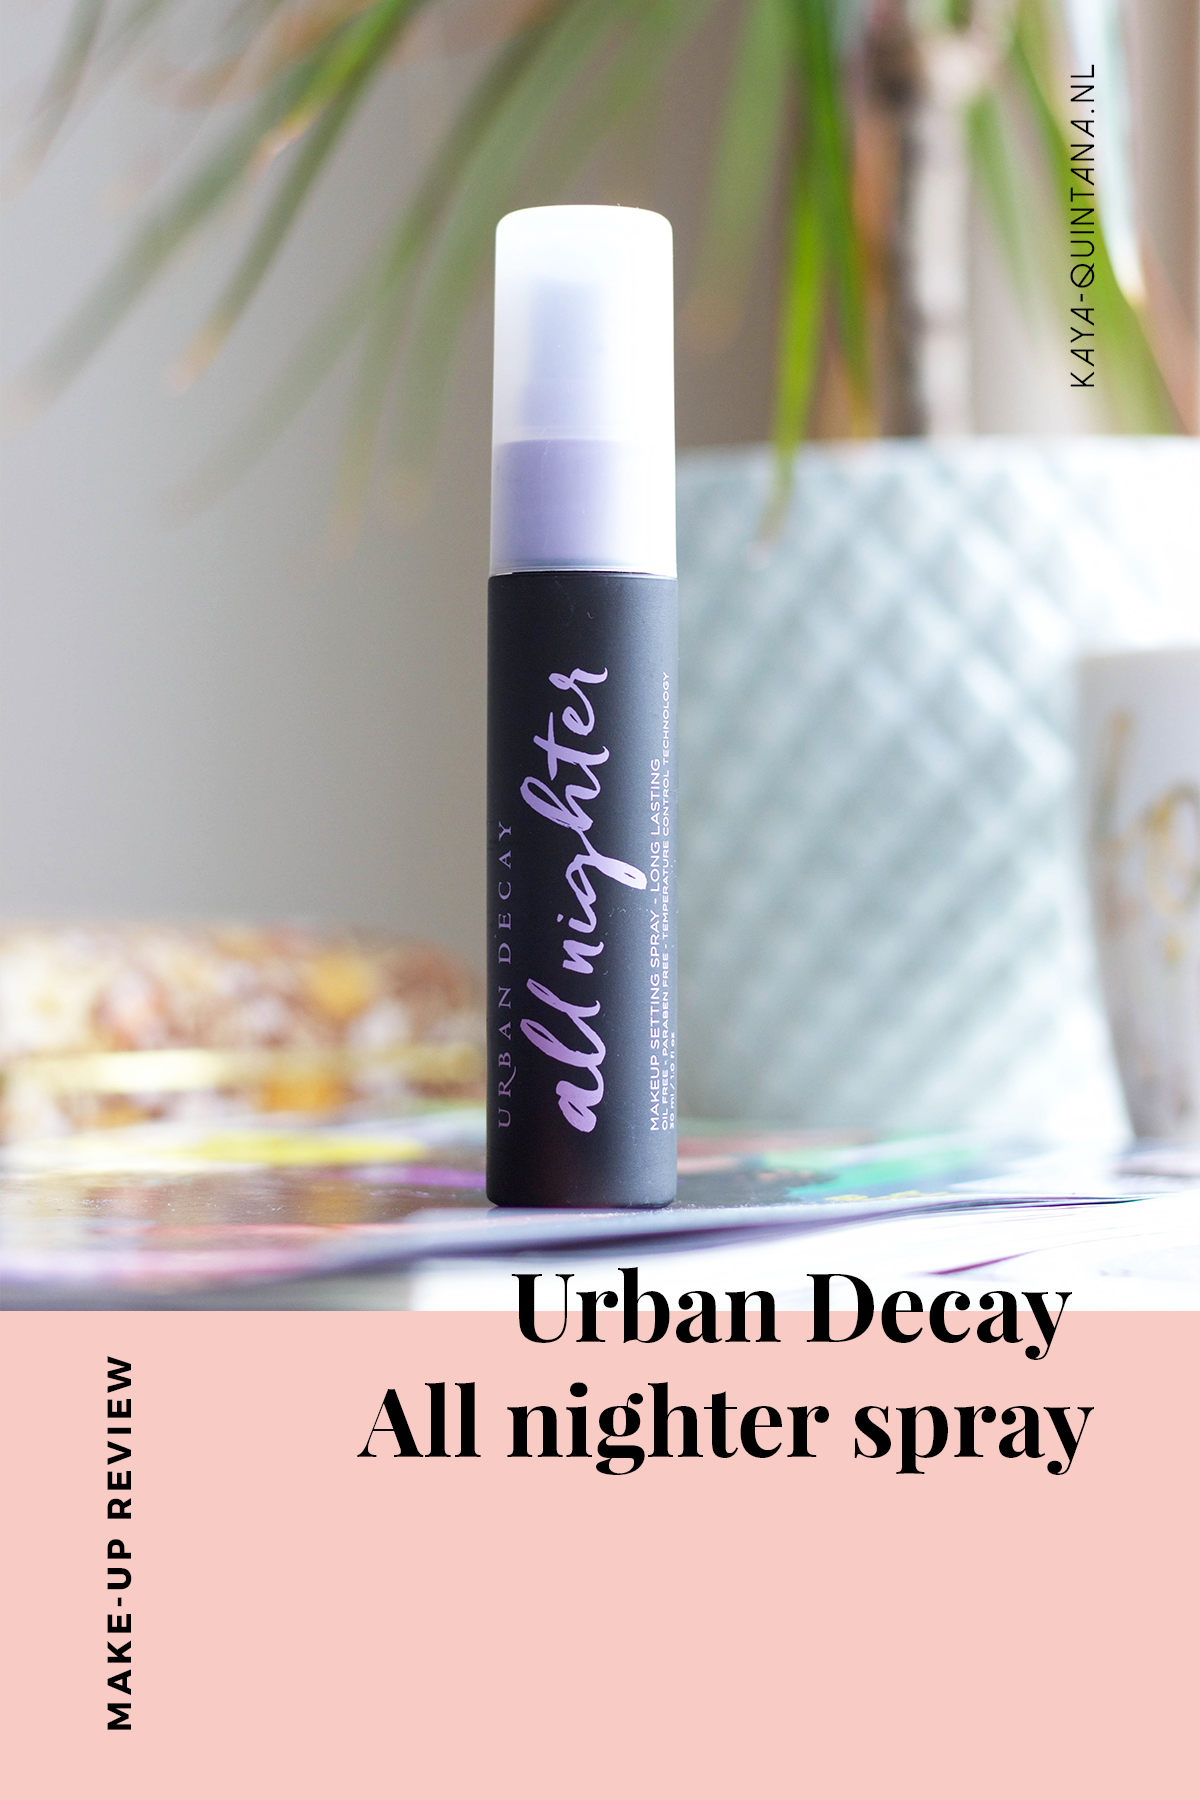 Urban Decay All nighter makeup setting spray review